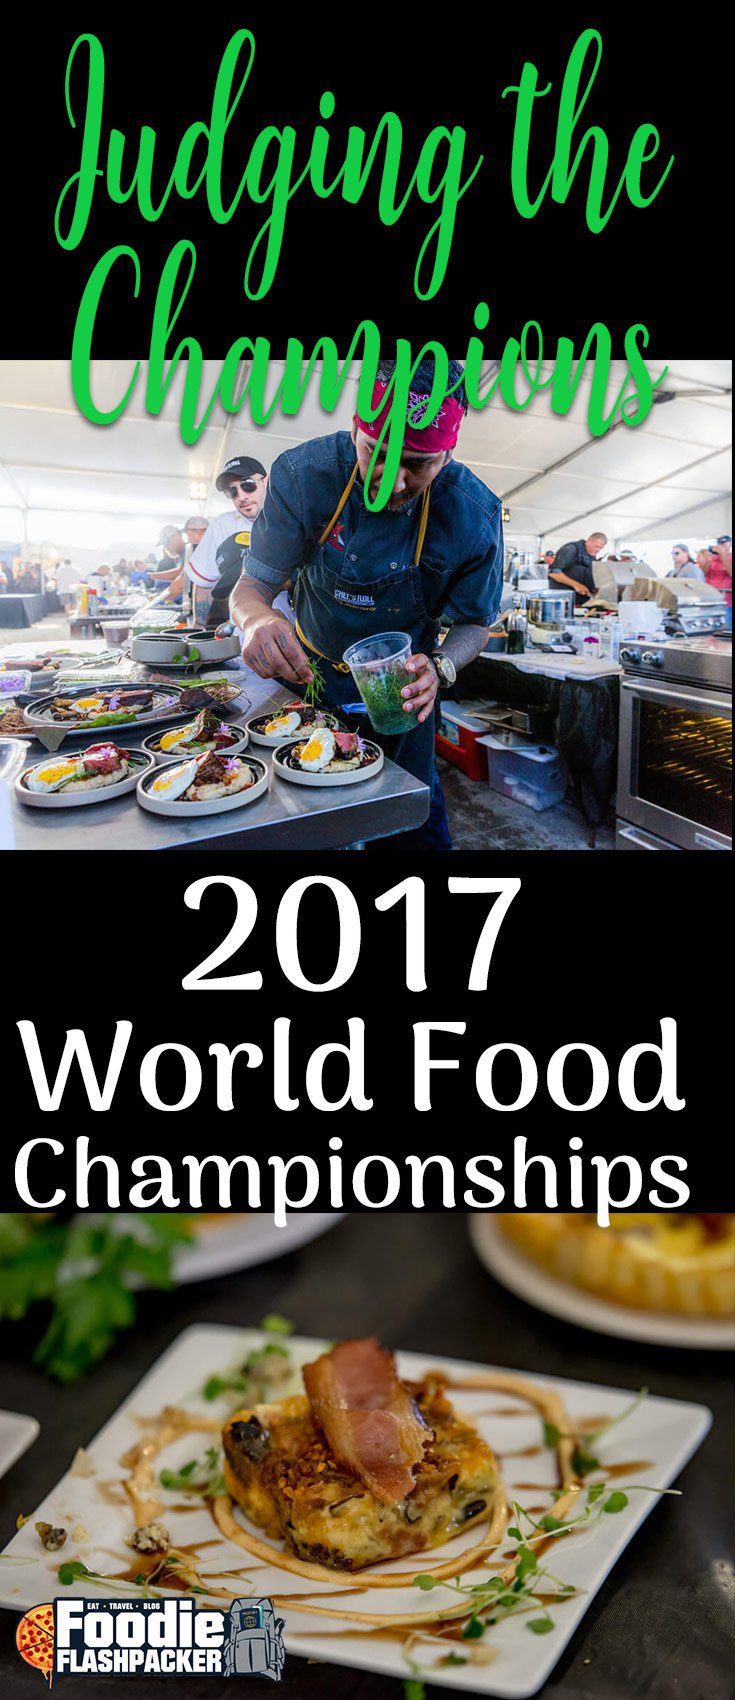 Find out more about the World Food Championships, one of the biggest events in United States food sports. Over 400 teams compete each year for a grand prize of $100,000.